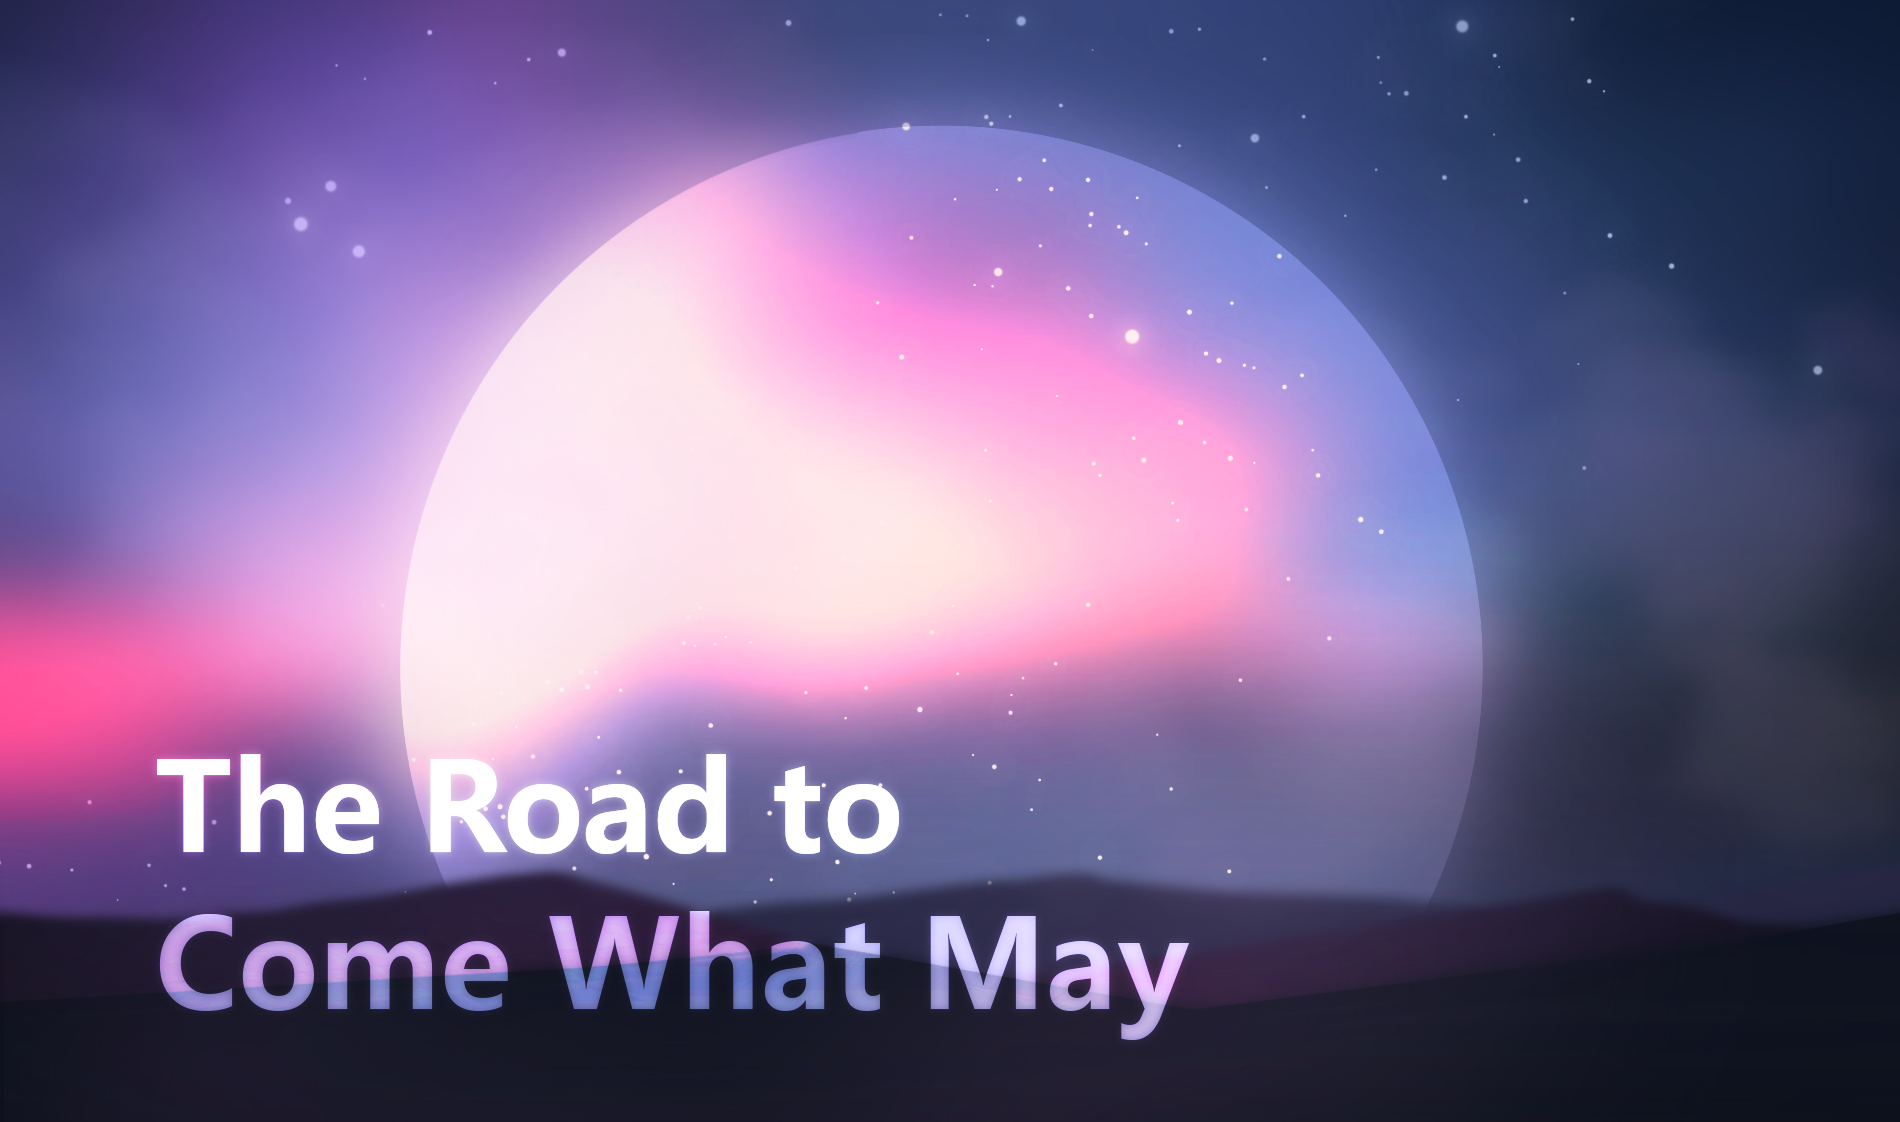 The Road to Come What May